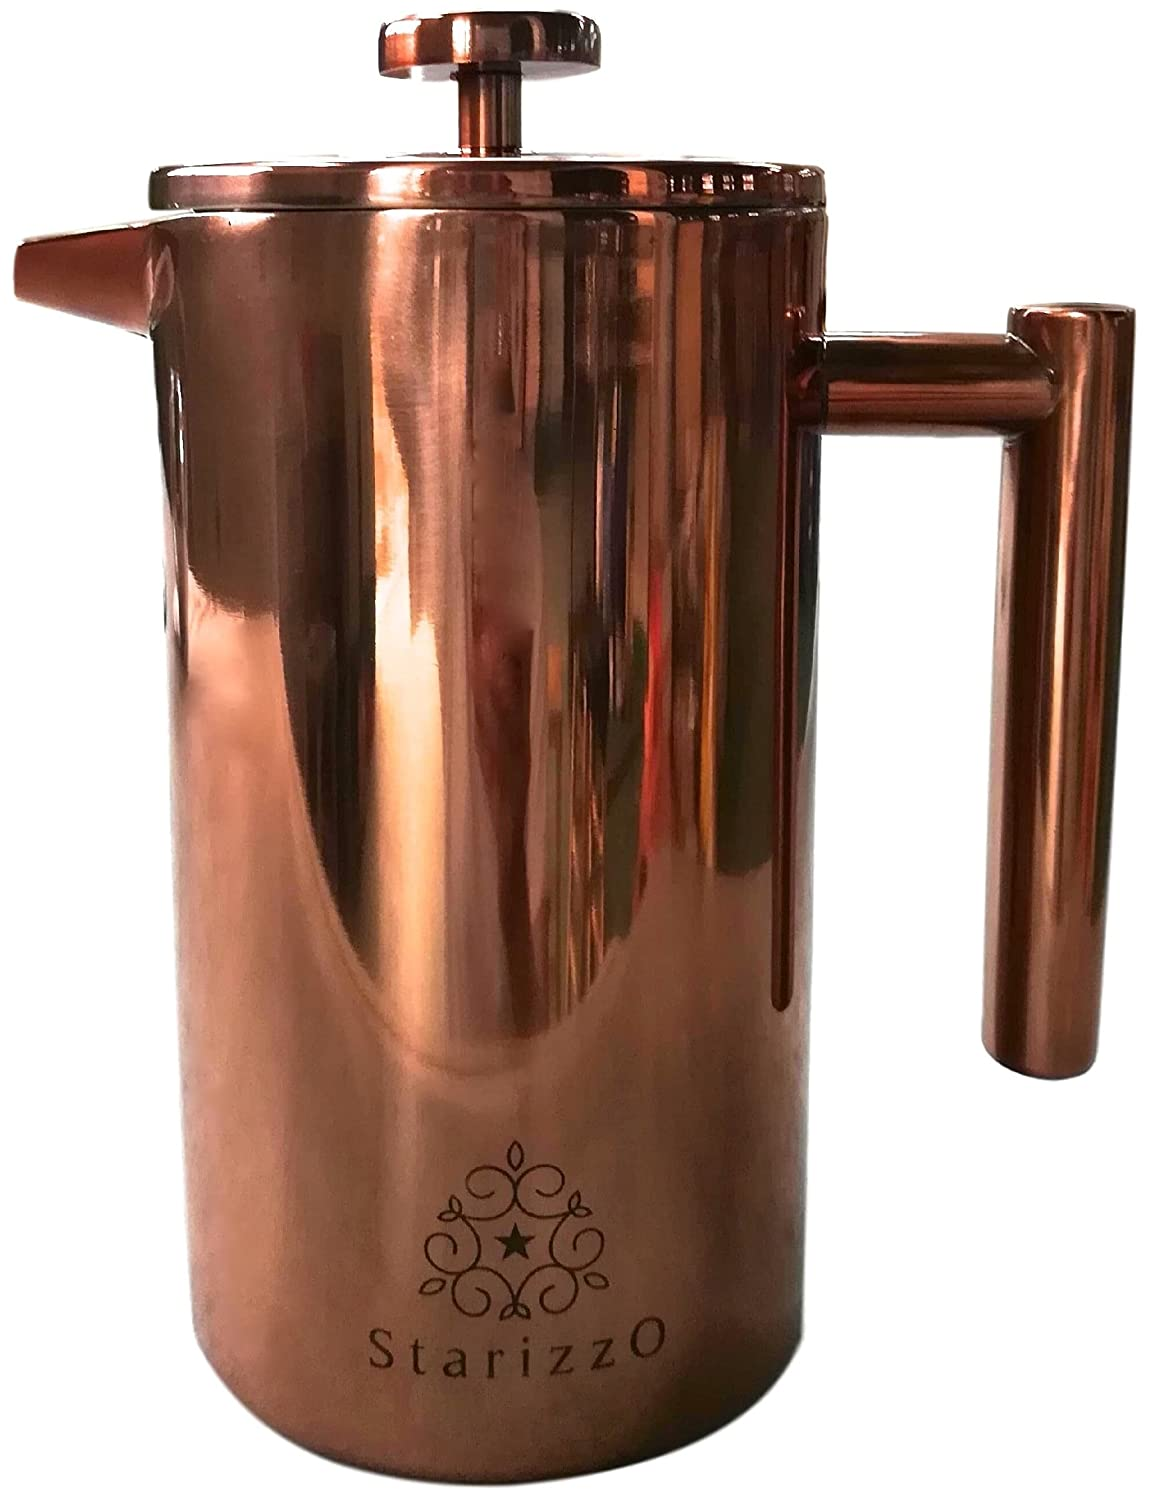 French Press Coffee Maker With Beautiful Copper Finish, Premium Insulated Stainless Steel, Closing Lid Spout Feature For Very High Heat Retention, 34 oz, Classic Design, Dependable Quality CopperCrate Products B01LW87AJF